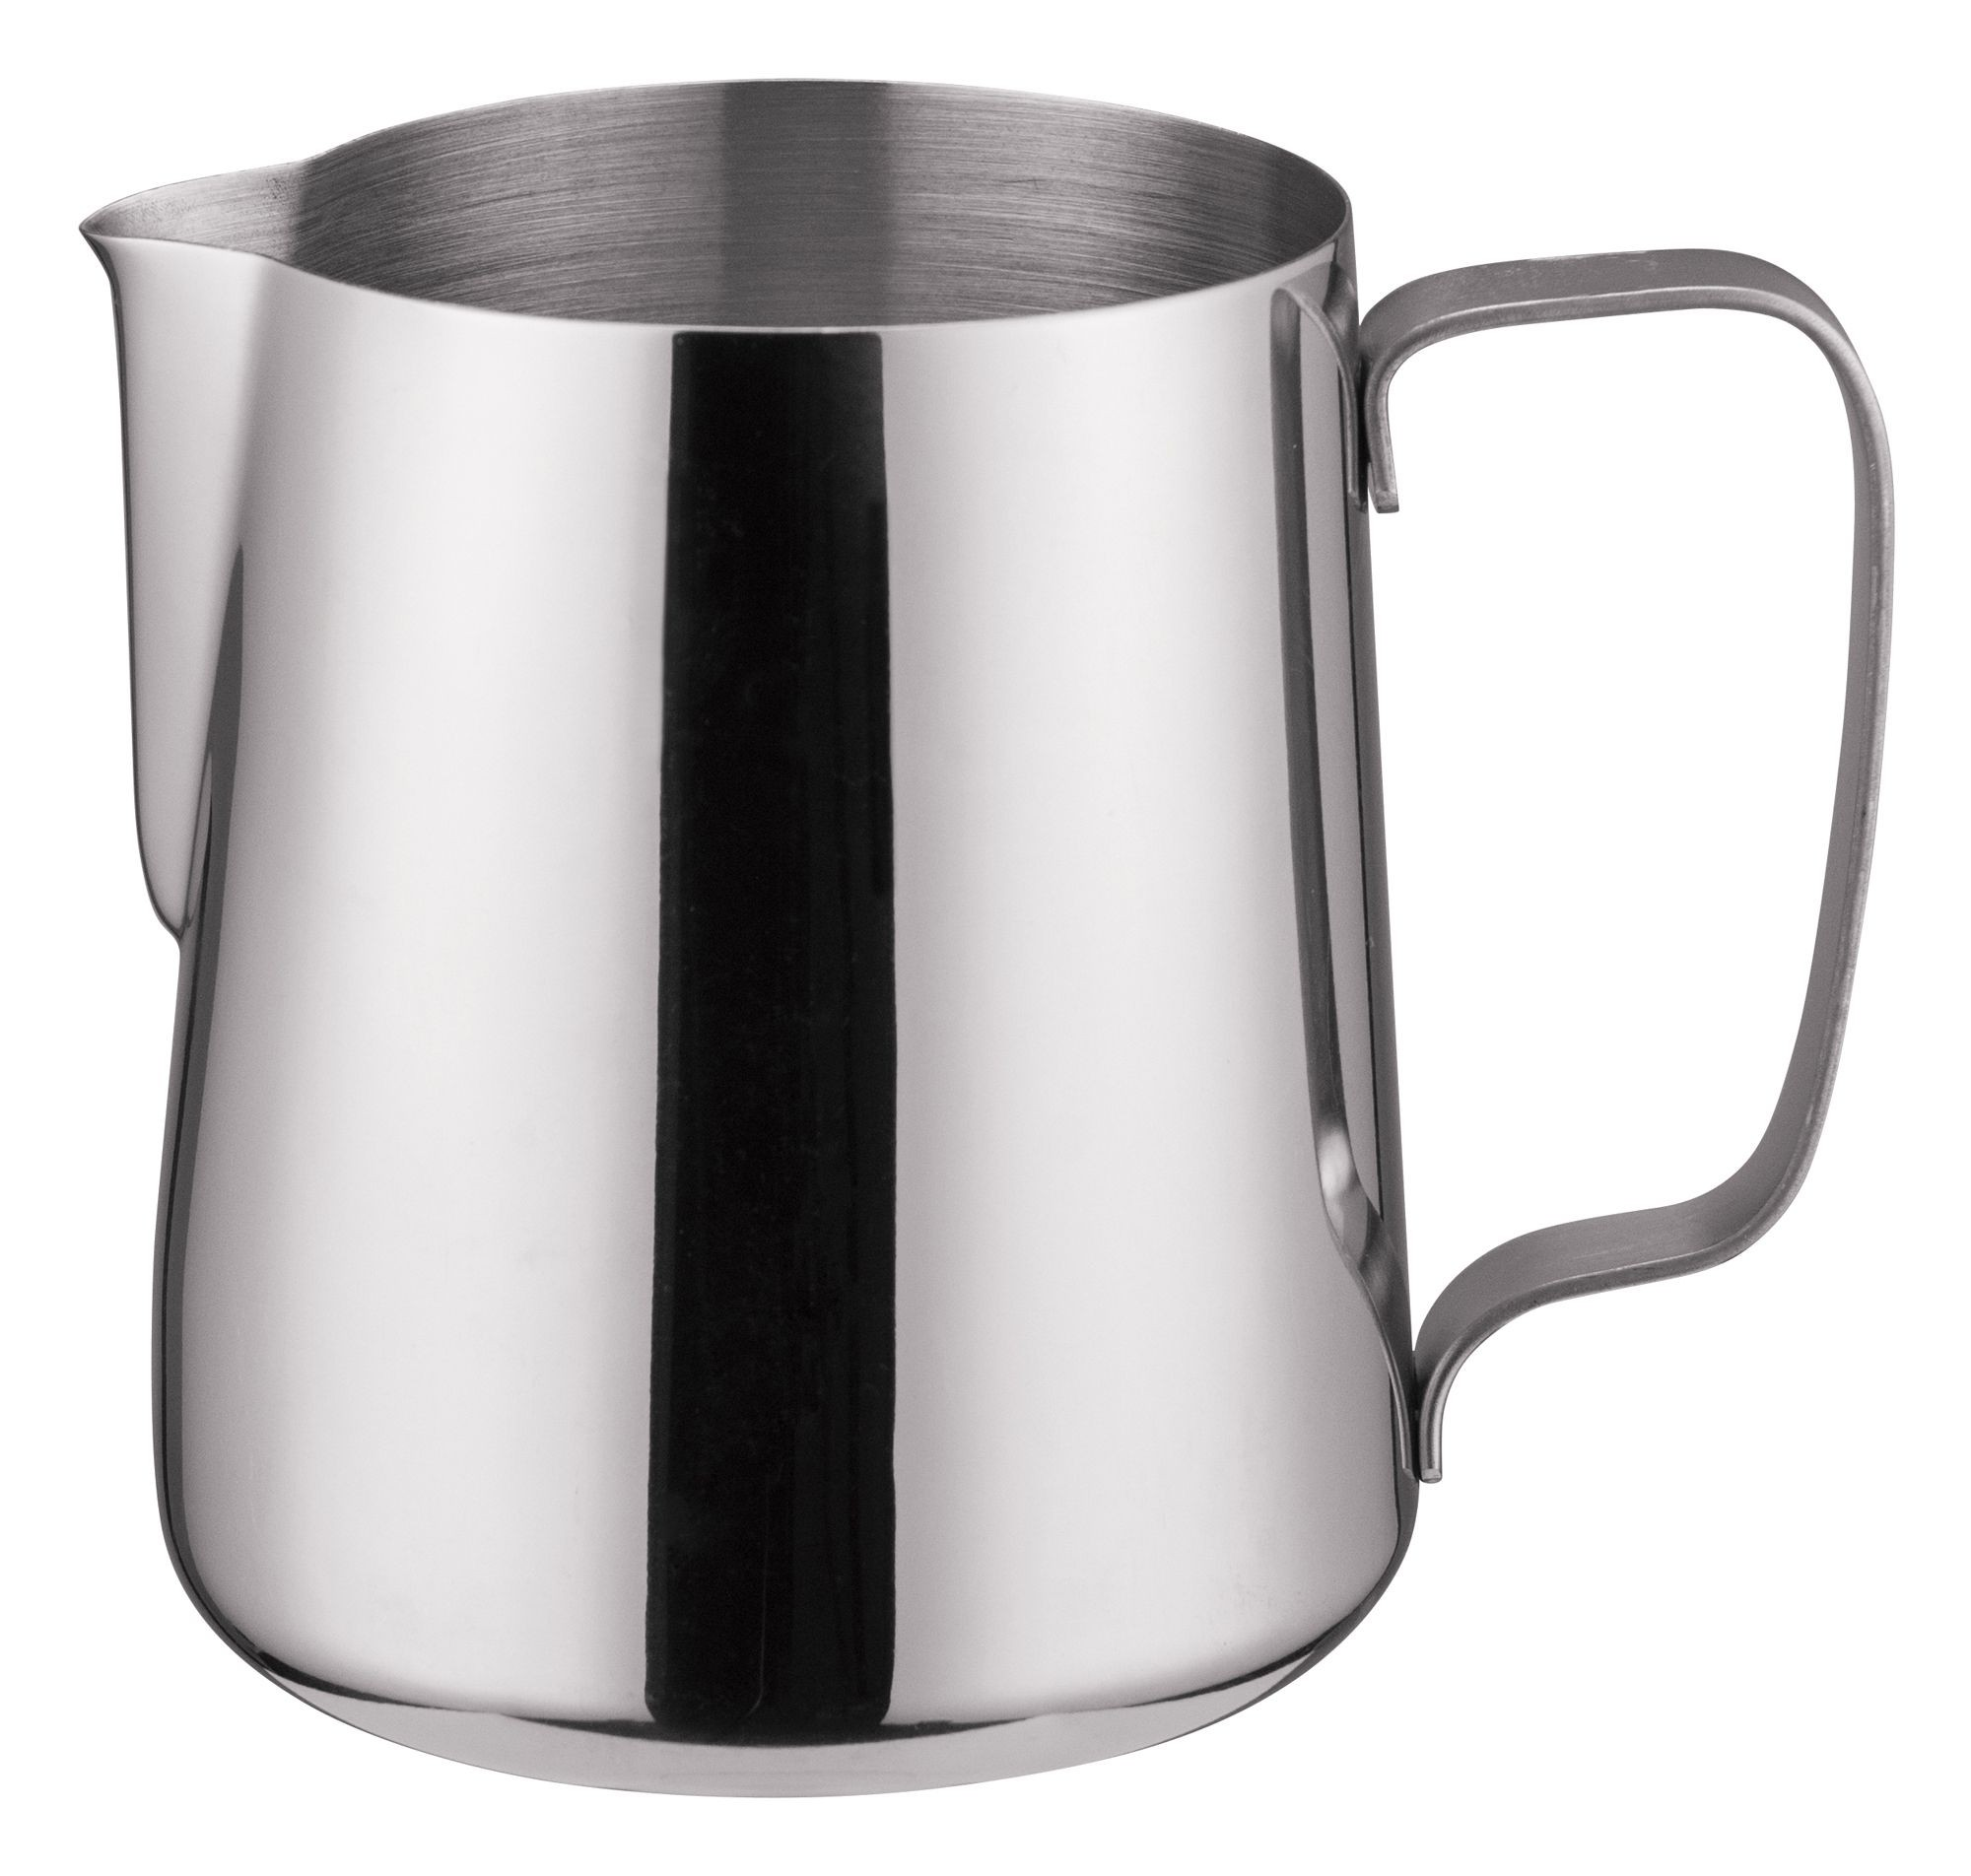 Winco WP-33 Stainless Steel 33 oz. Frothing Pitcher